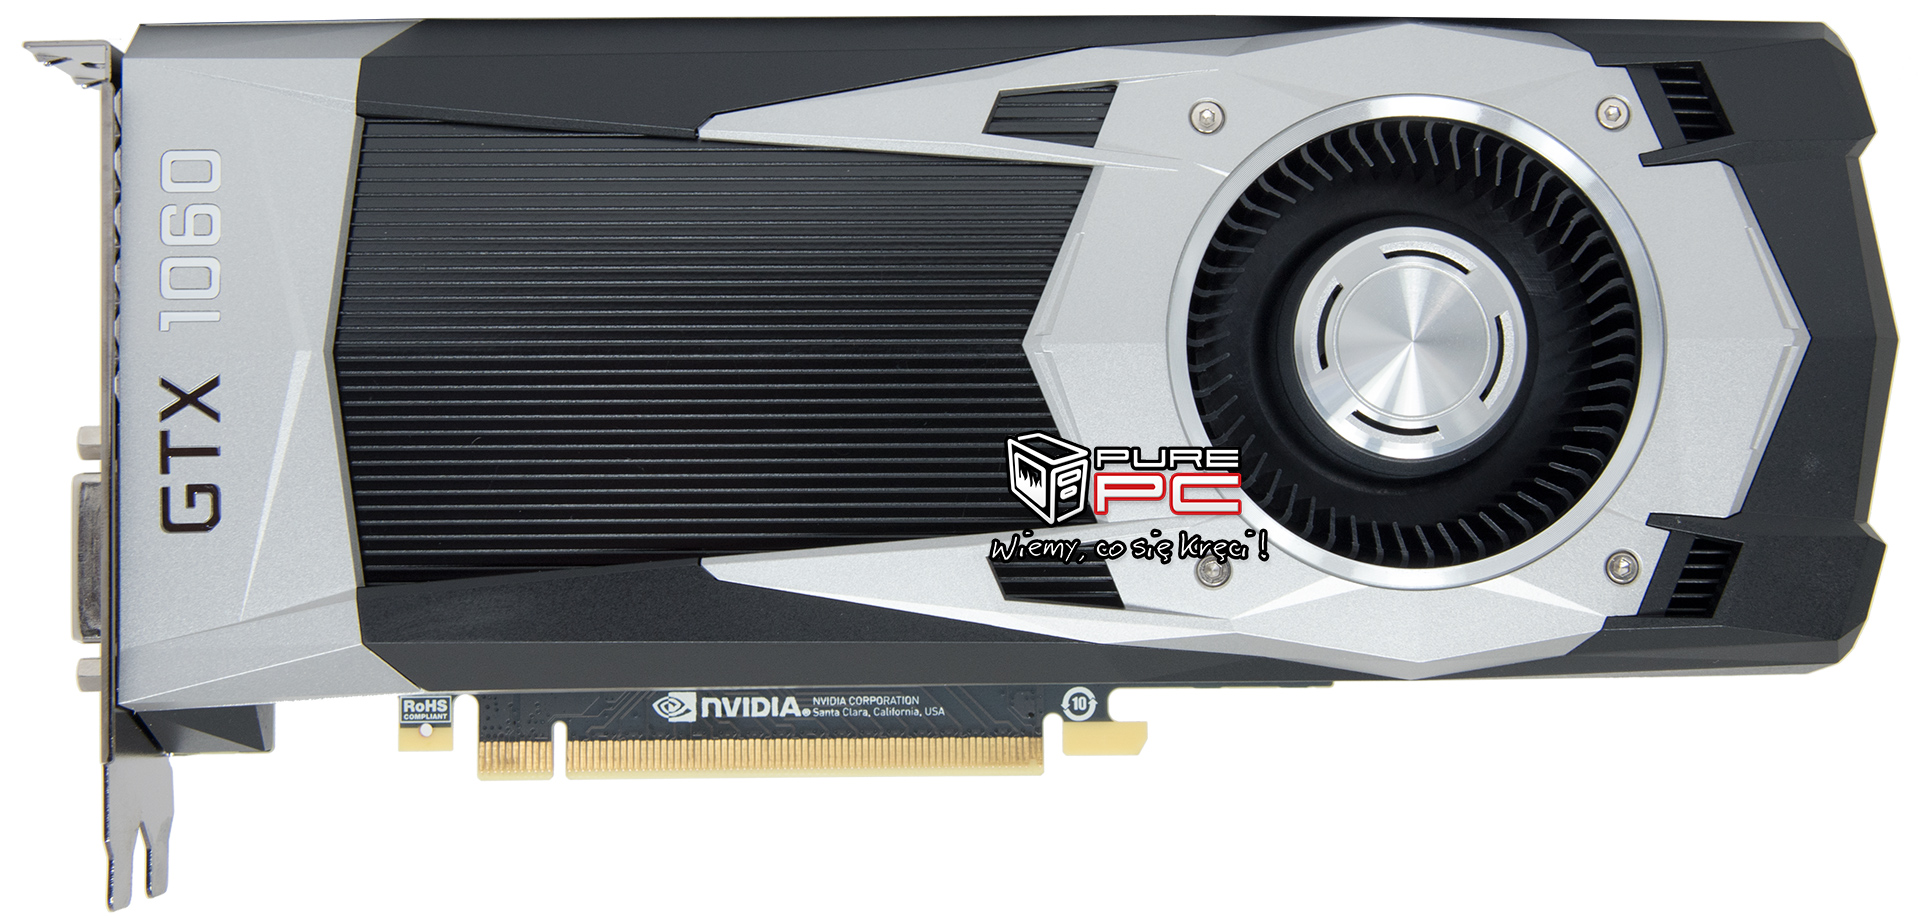 Nvidia GTX 1060 pictured - no SLI connector?